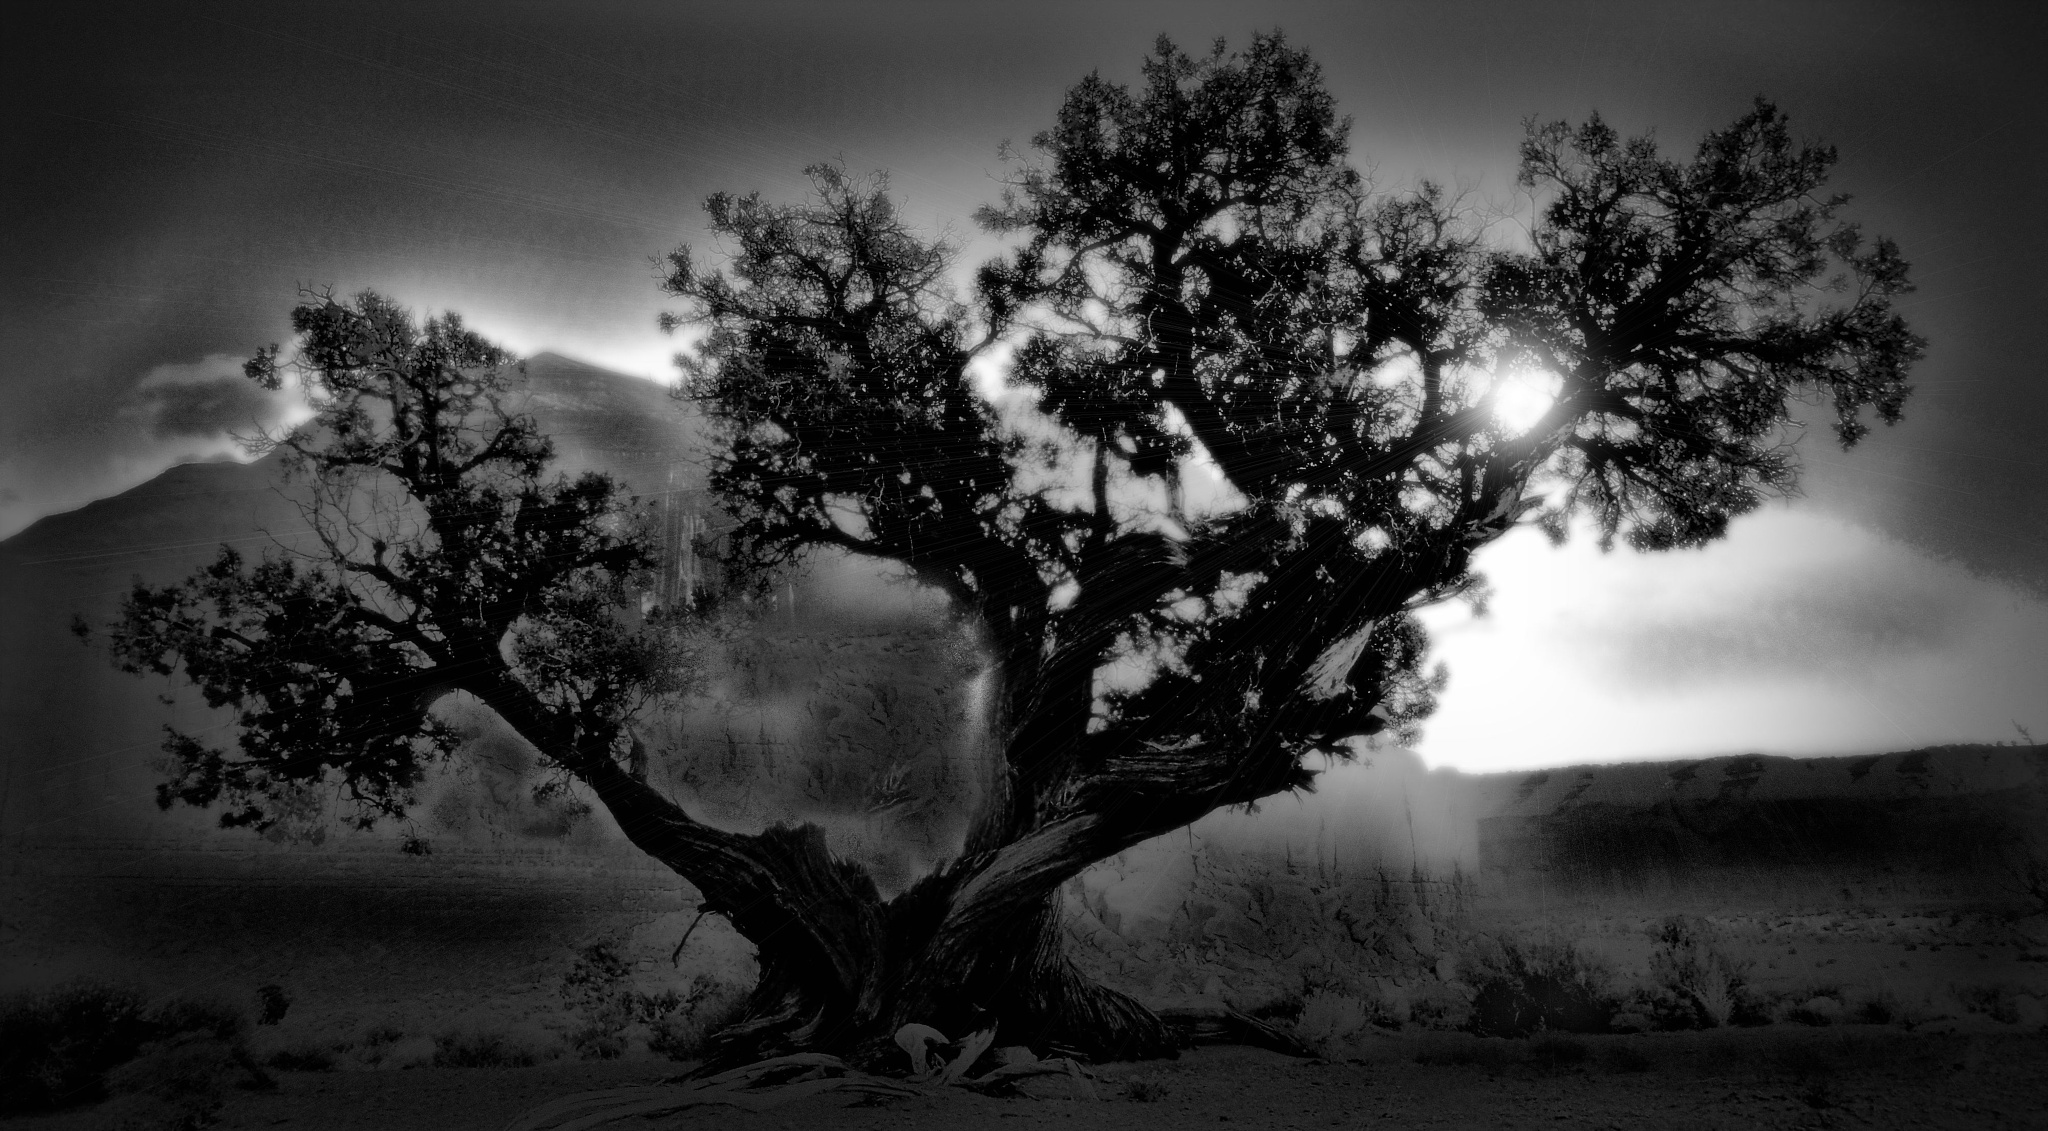 The Juniper Tree by C michael anthony